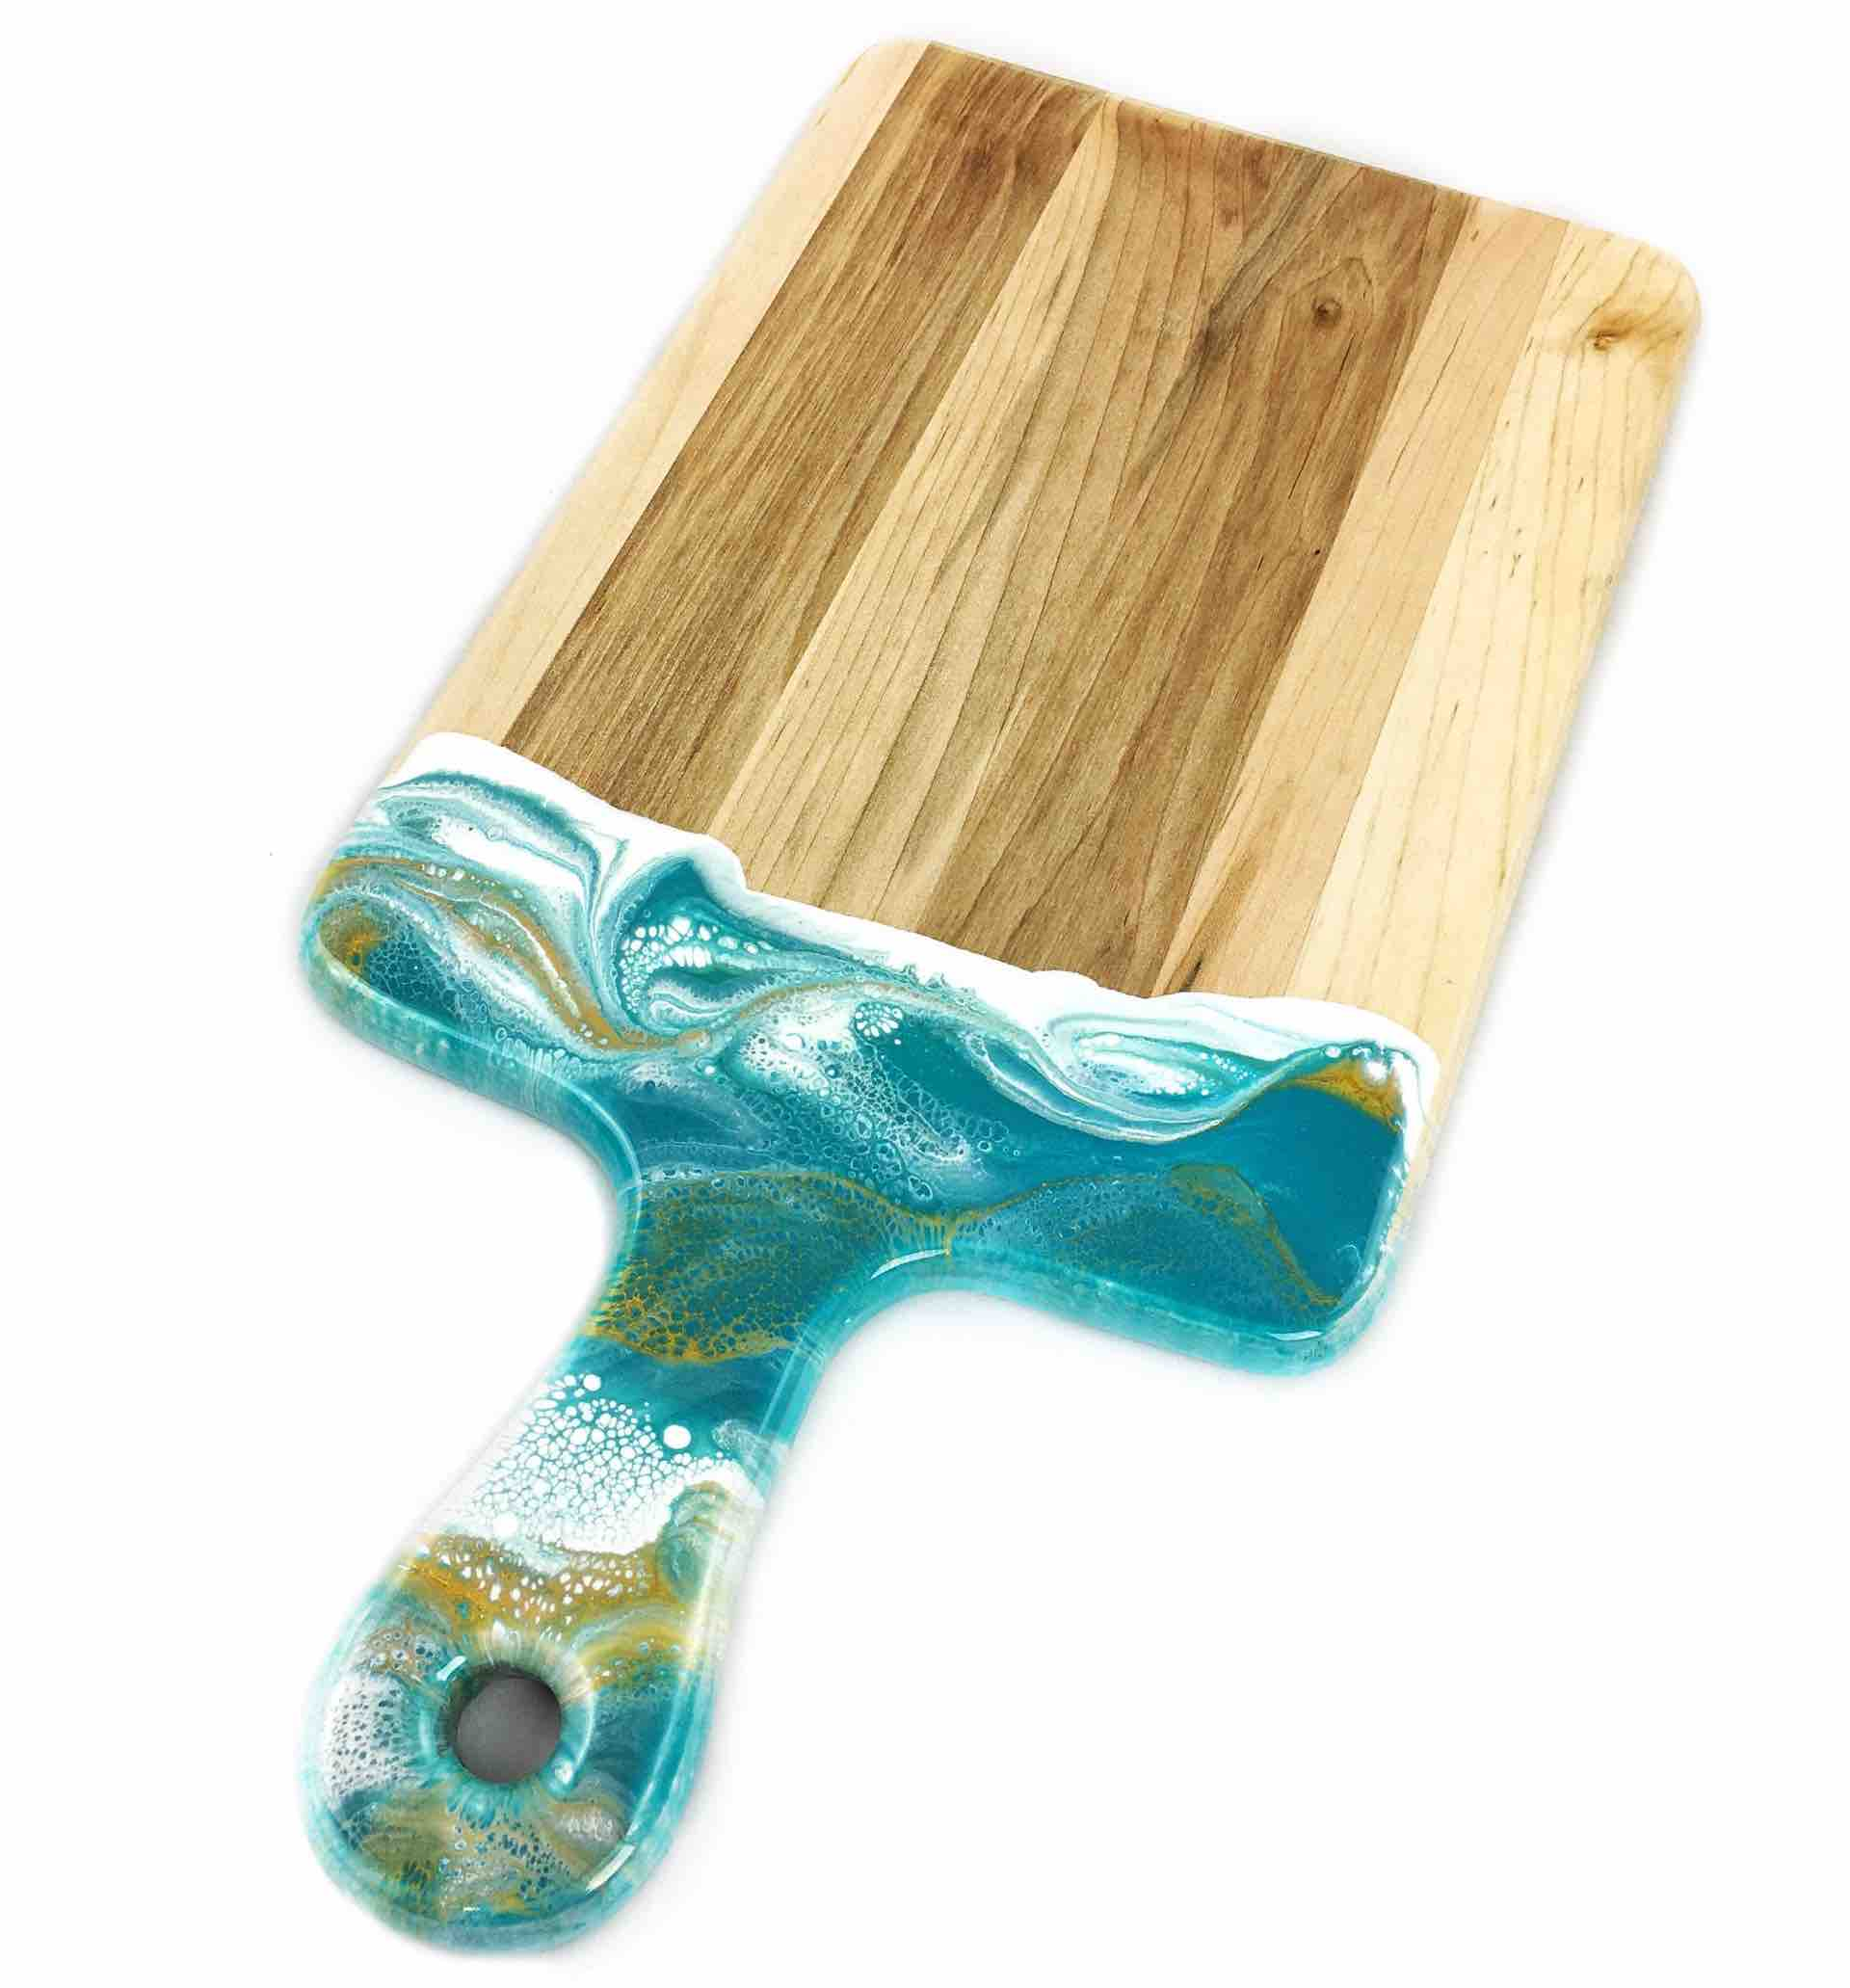 Lynn & Liana Cheeseboard with Dipped Handle | 8x16"